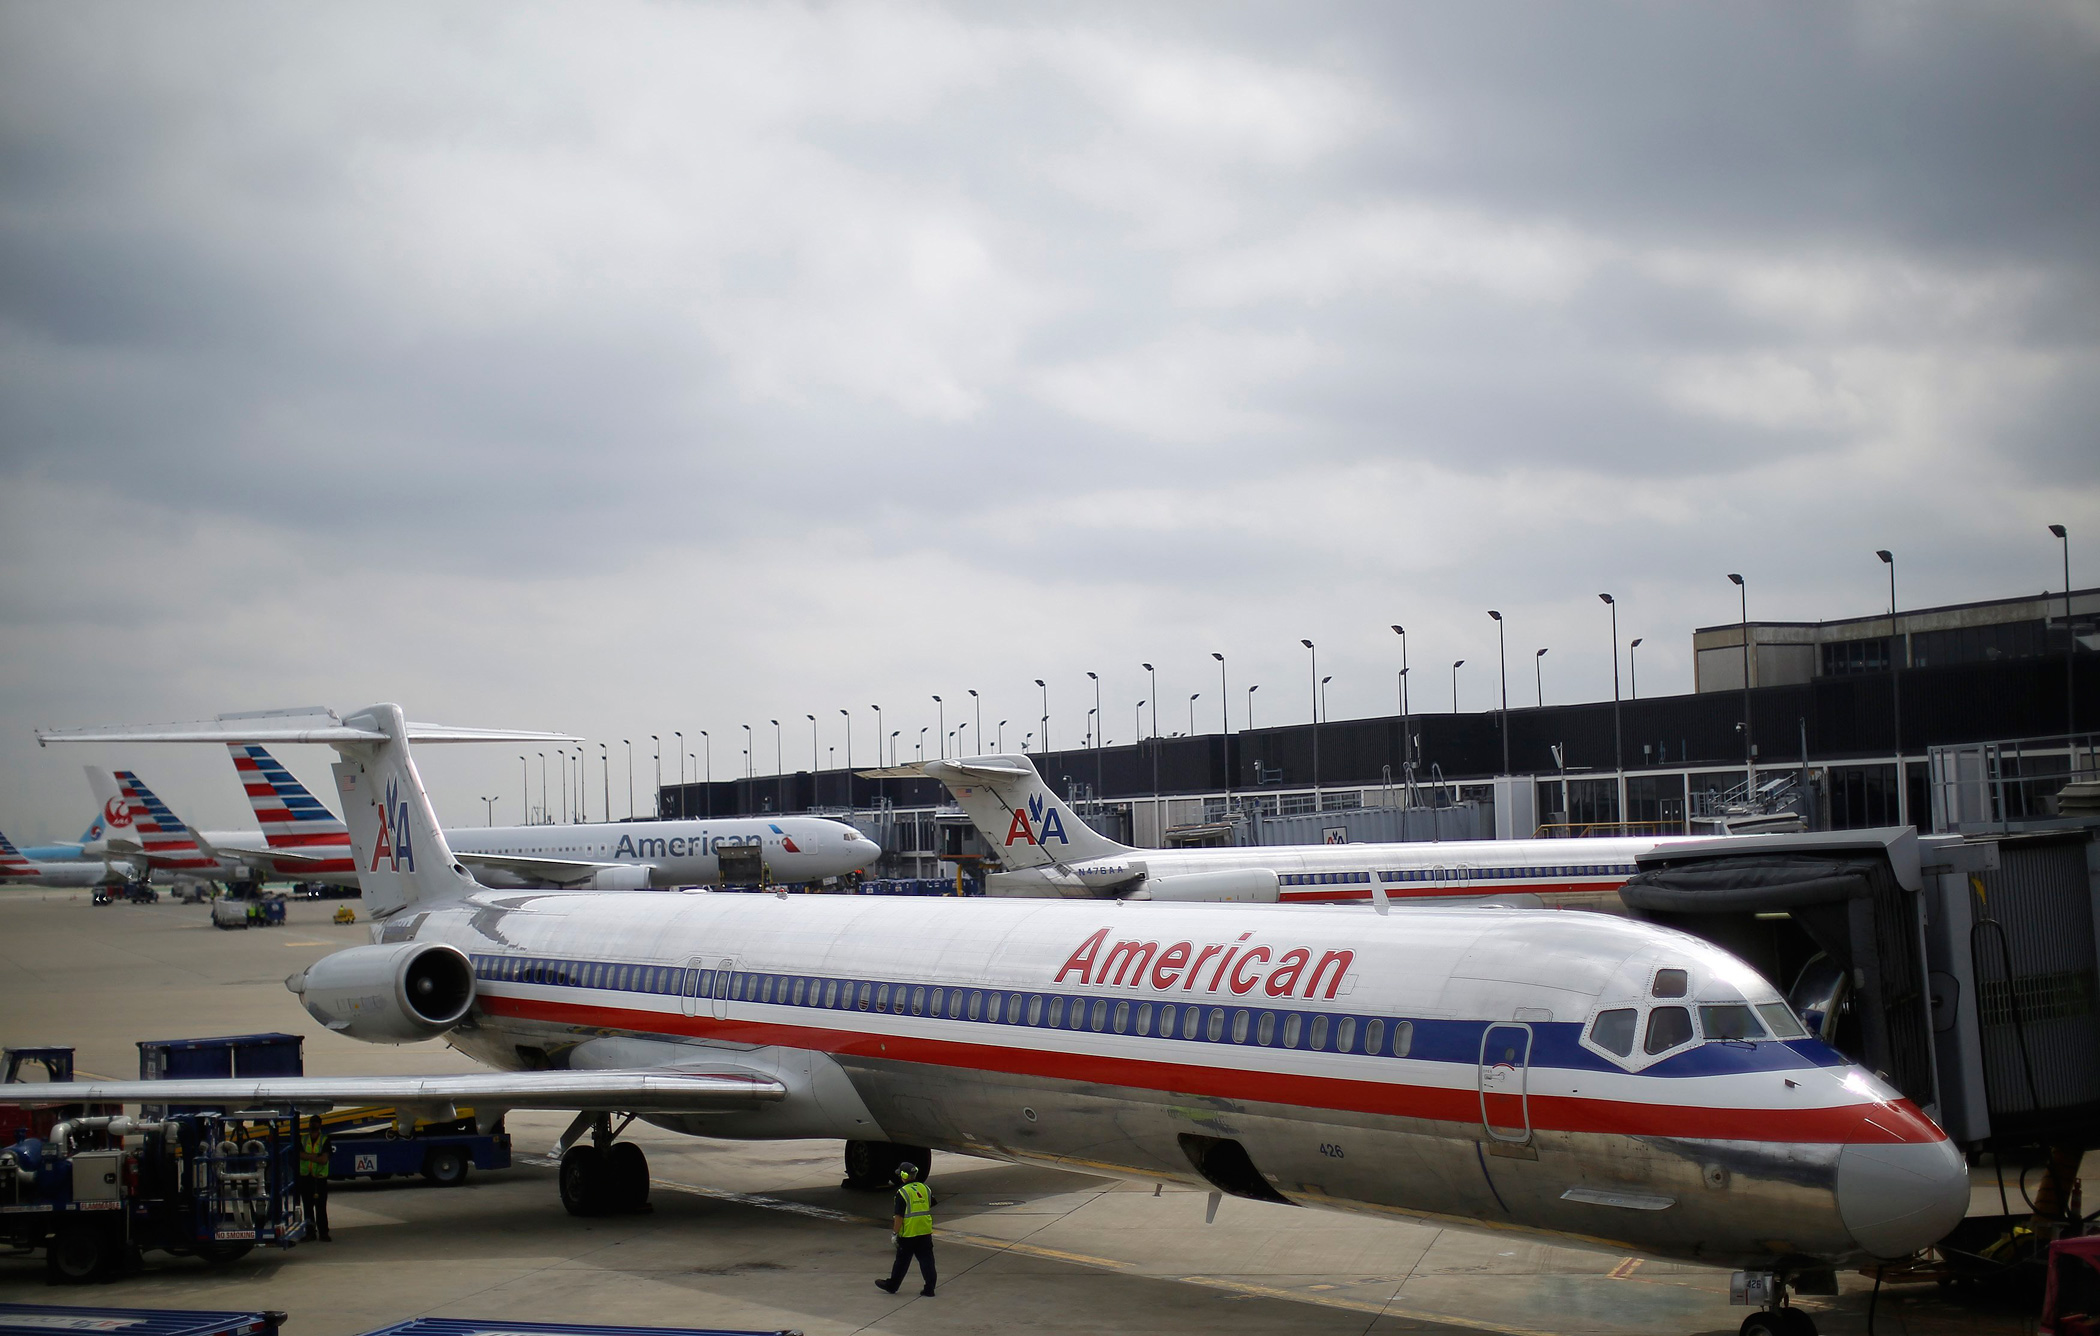 An American Airlines airplane sits at a gate at the O'Hare Airport on Oct. 2, 2014 in Chicago.